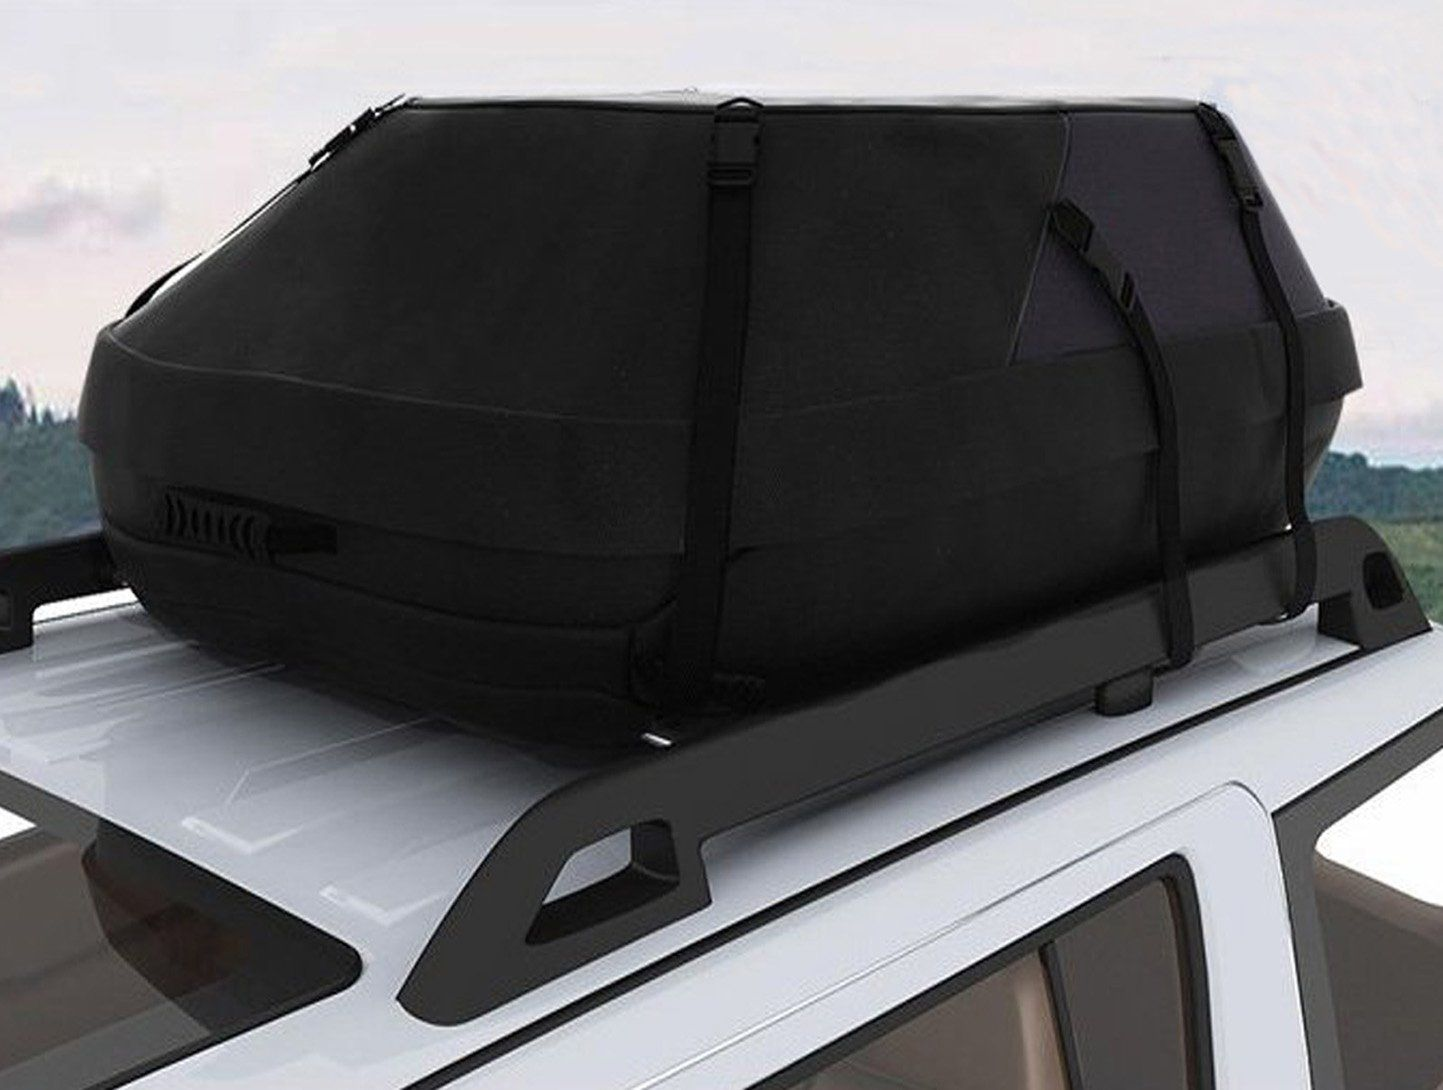 Kaluo 600d Universal Waterproof Car Top Carrier Bag 20 Cubic Hitch Tray Roof Top Cargo Bag Traveling Cars Vans Suvs Us Stock Waterproof Car Carrier Bag Wide Straps